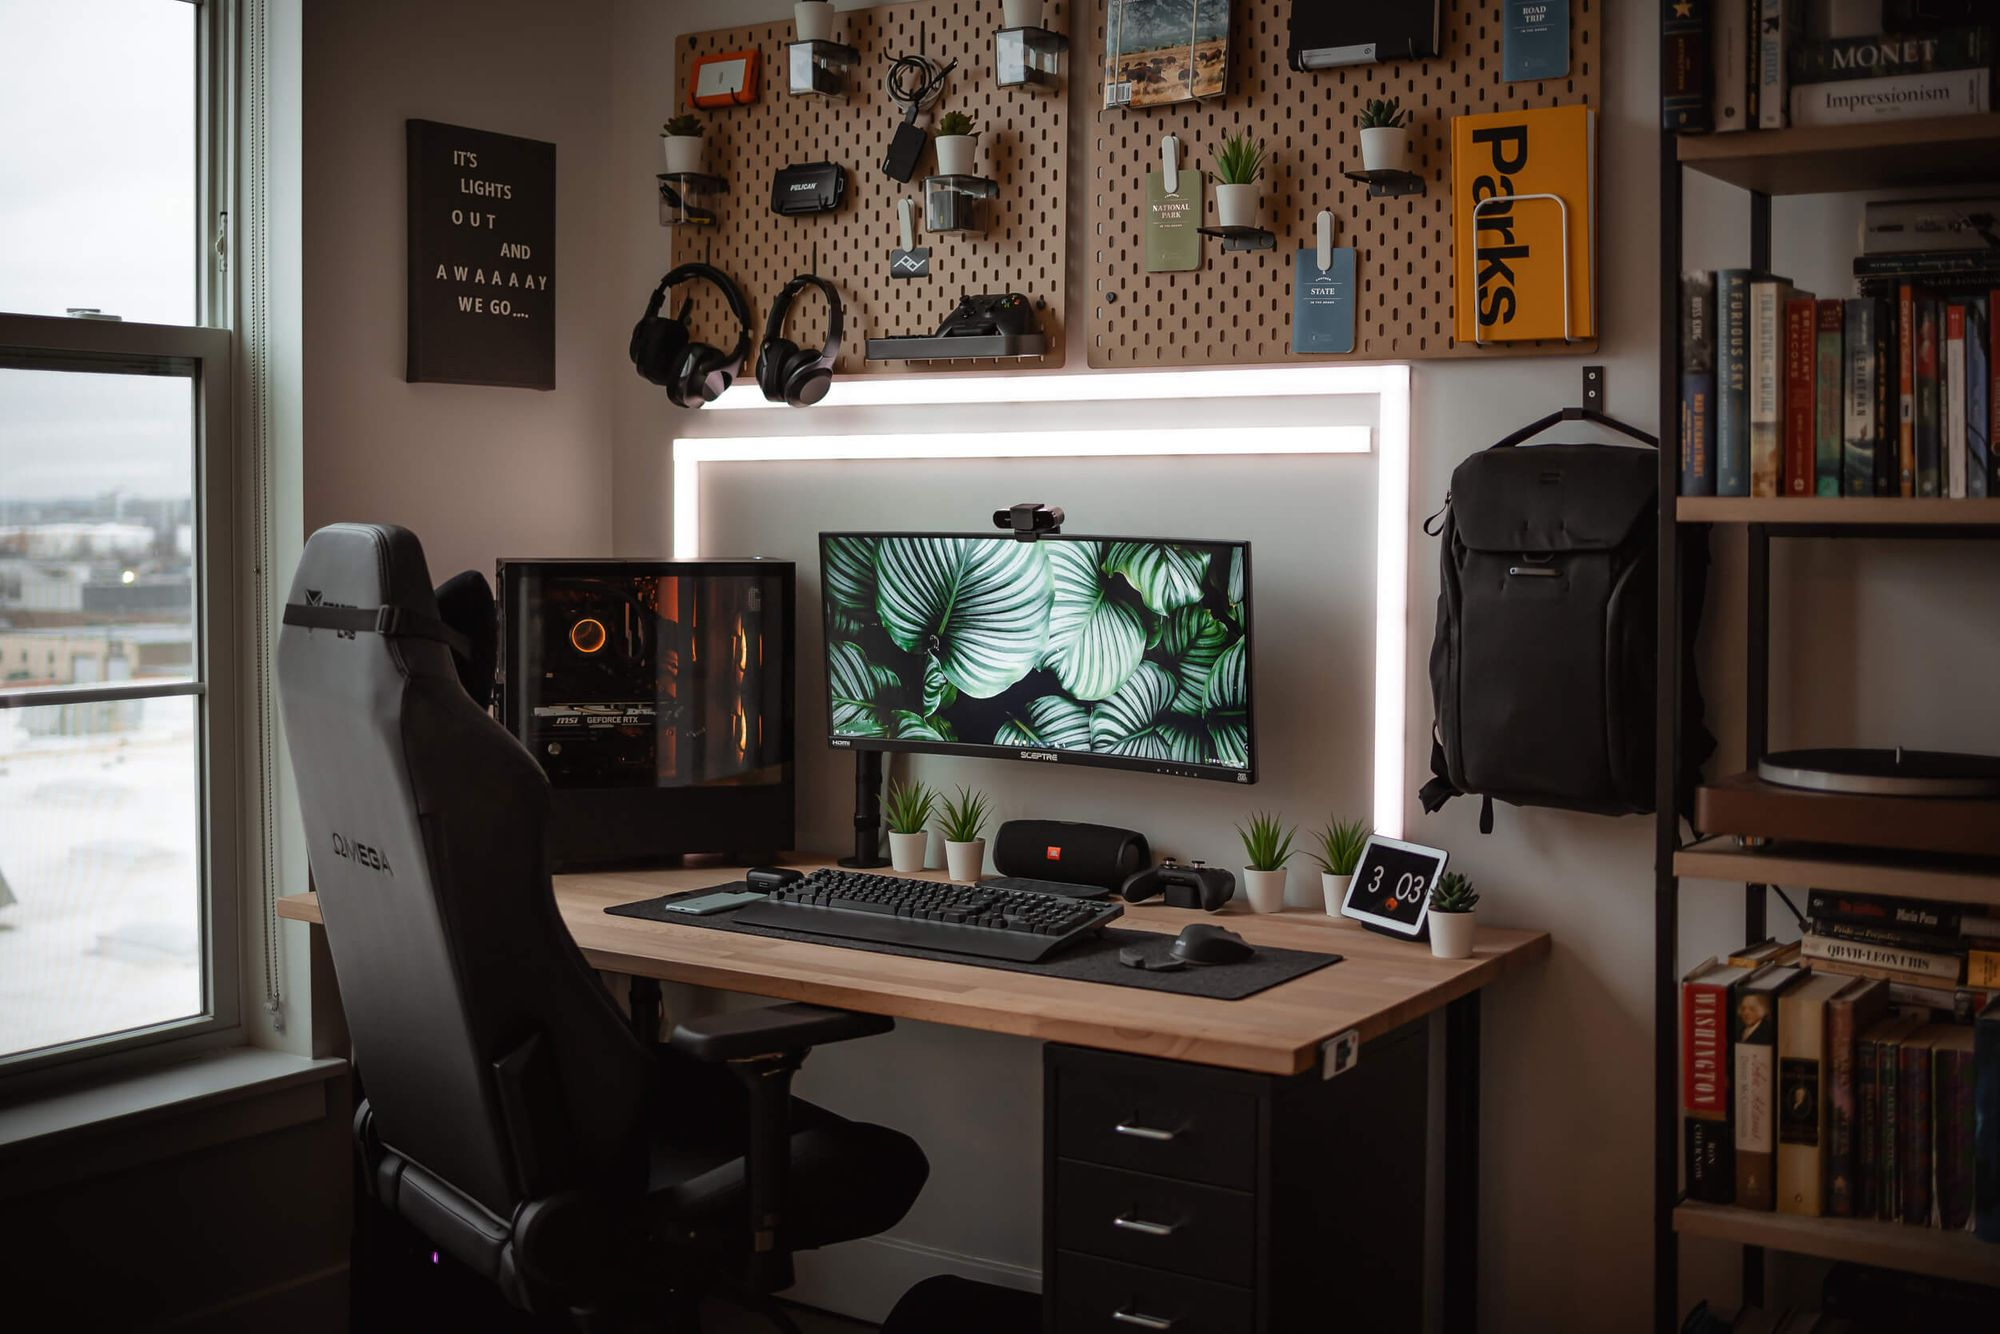 Cam's versatile maker station serves him as a workspace, battle station, and so much more